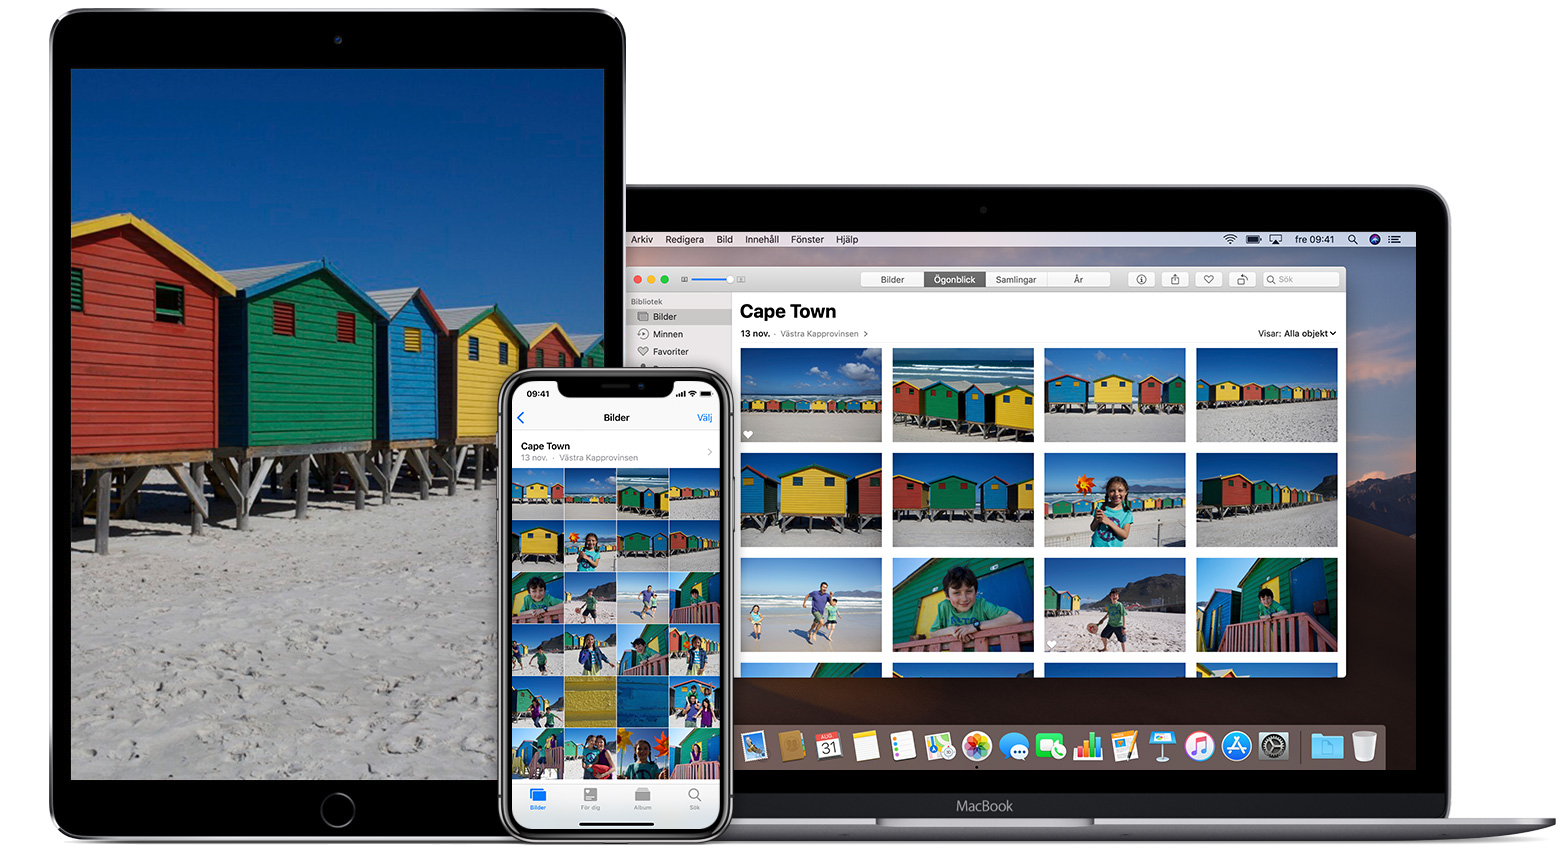 Appen Bilder på iPad, iPhone och Mac